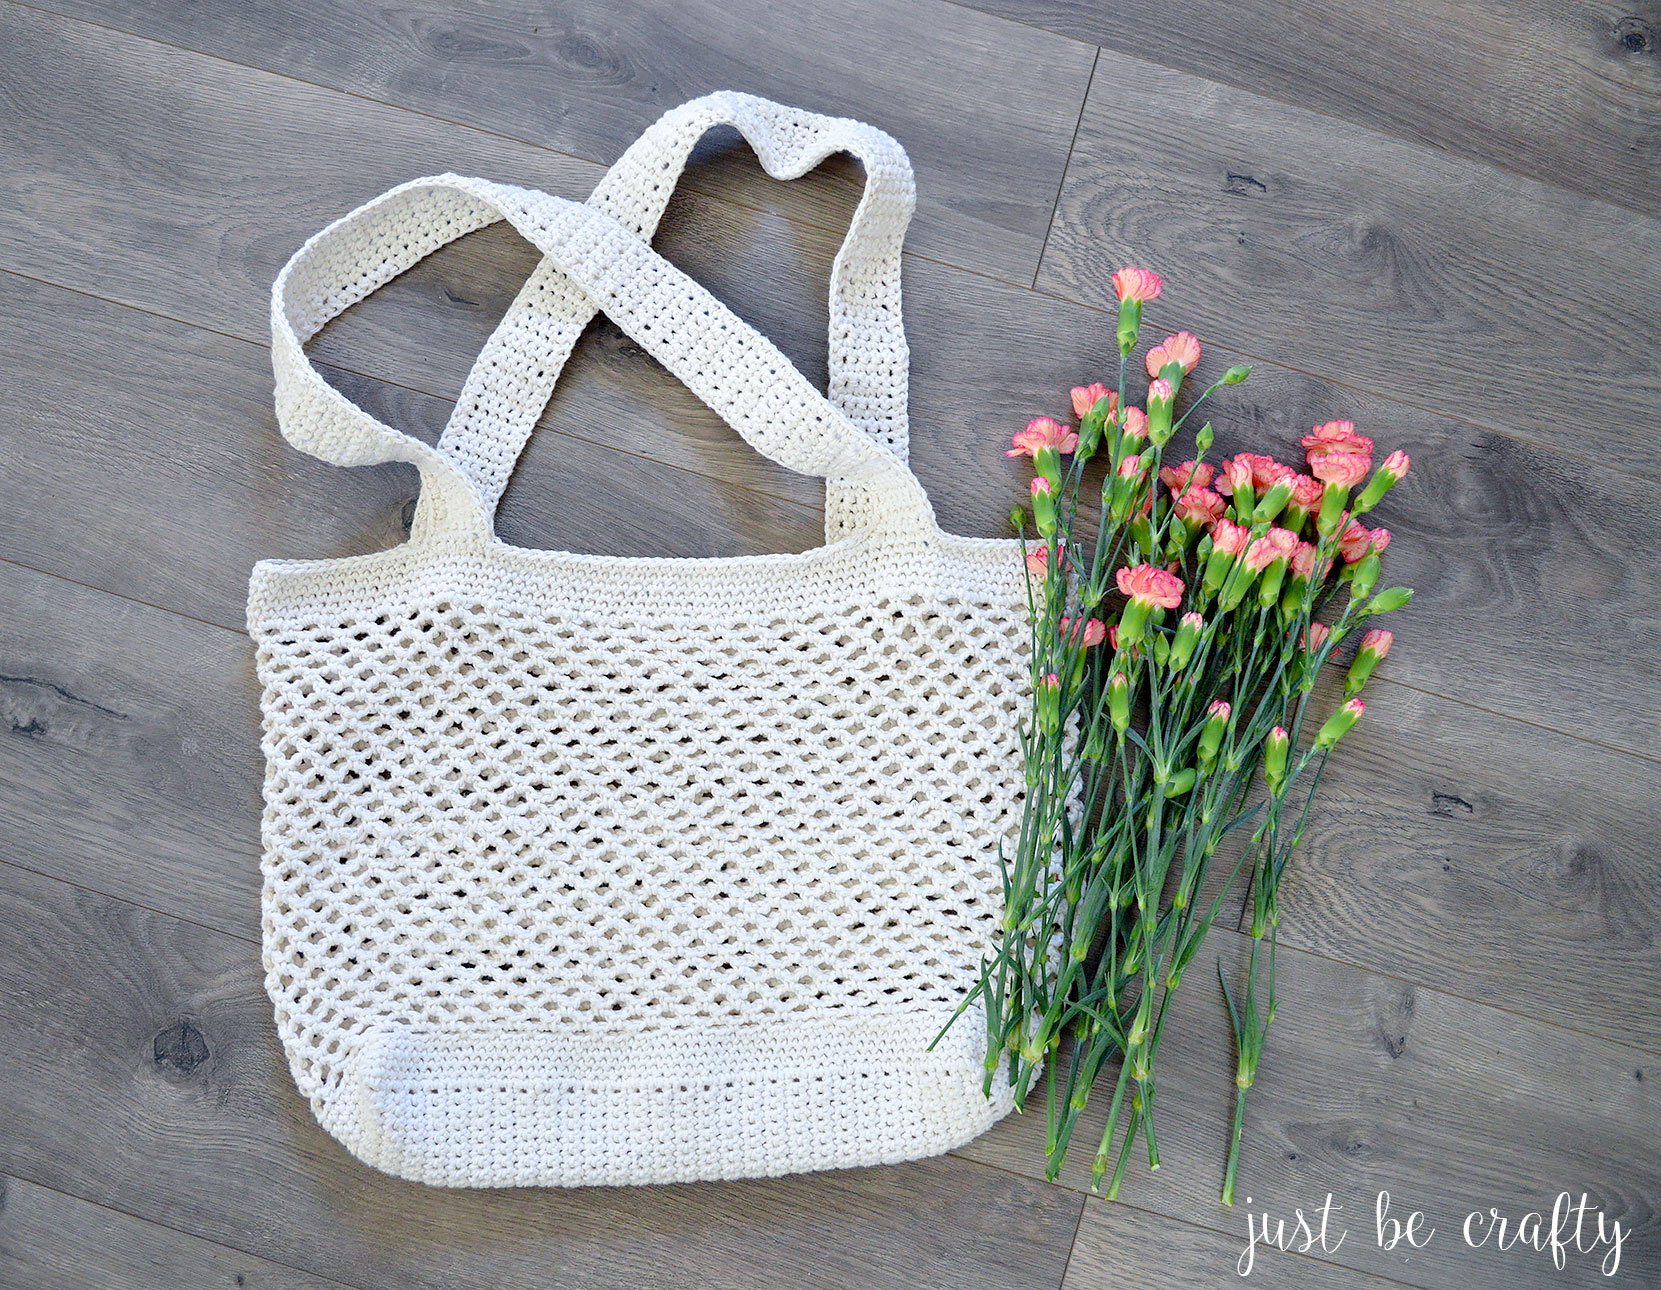 2017 05 fashion flowers to crochet - Will You Give This Crochet Farmer S Market Bag Pattern A Try Let Me Know In The Comments Below